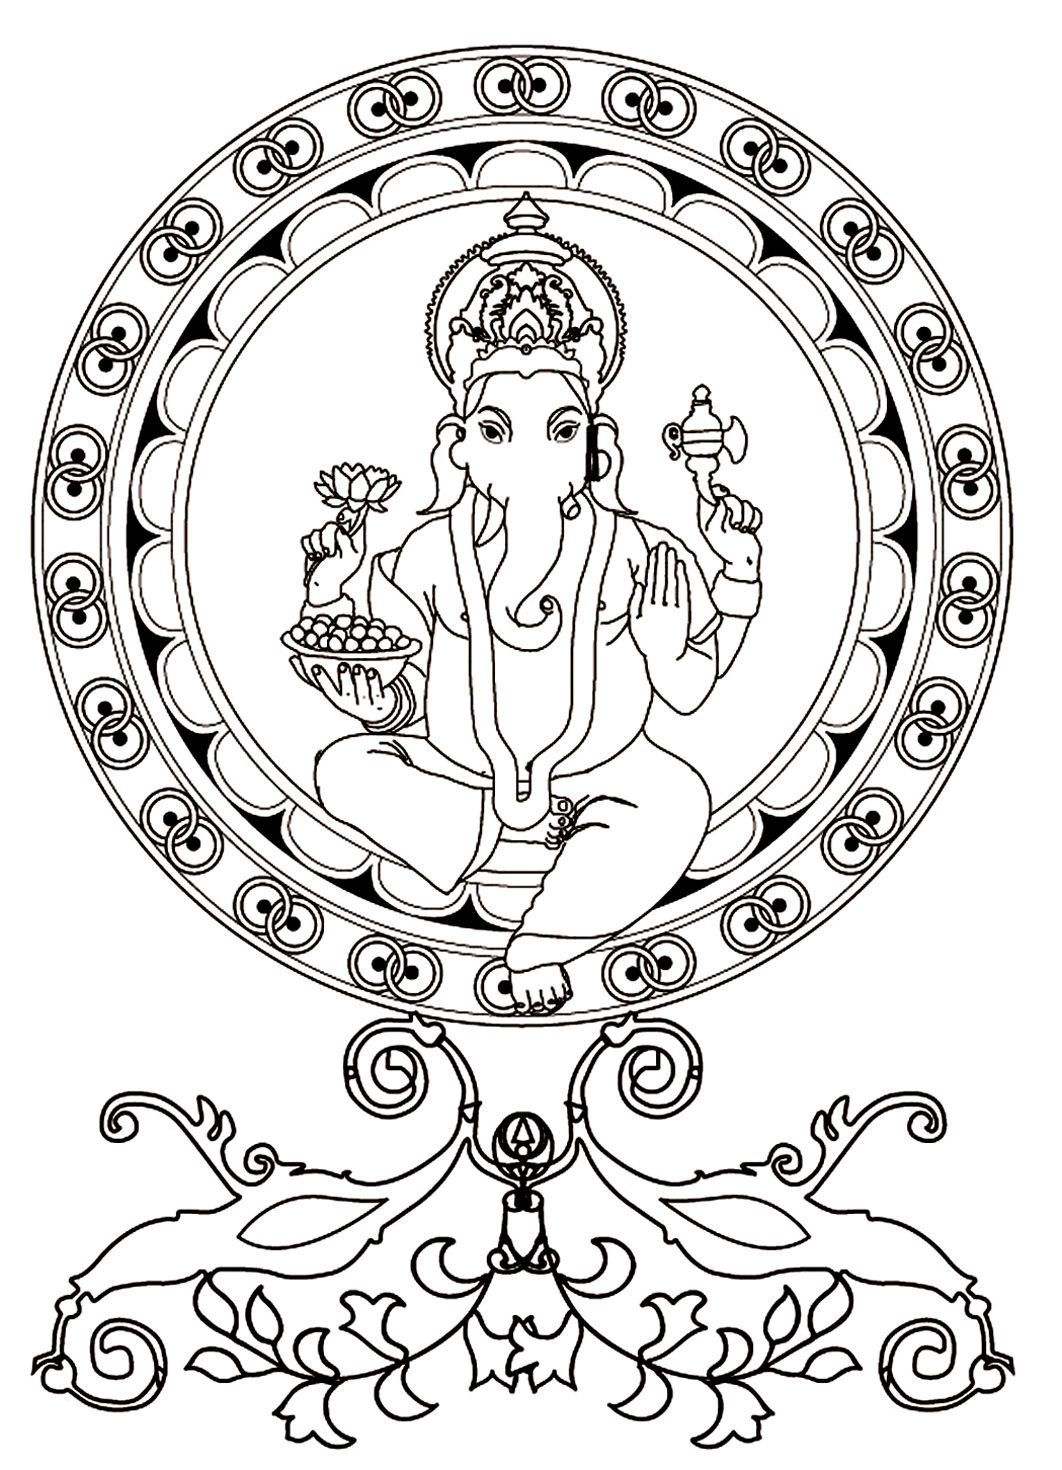 To Print This Free Coloring Page Adult Ganesh Click On